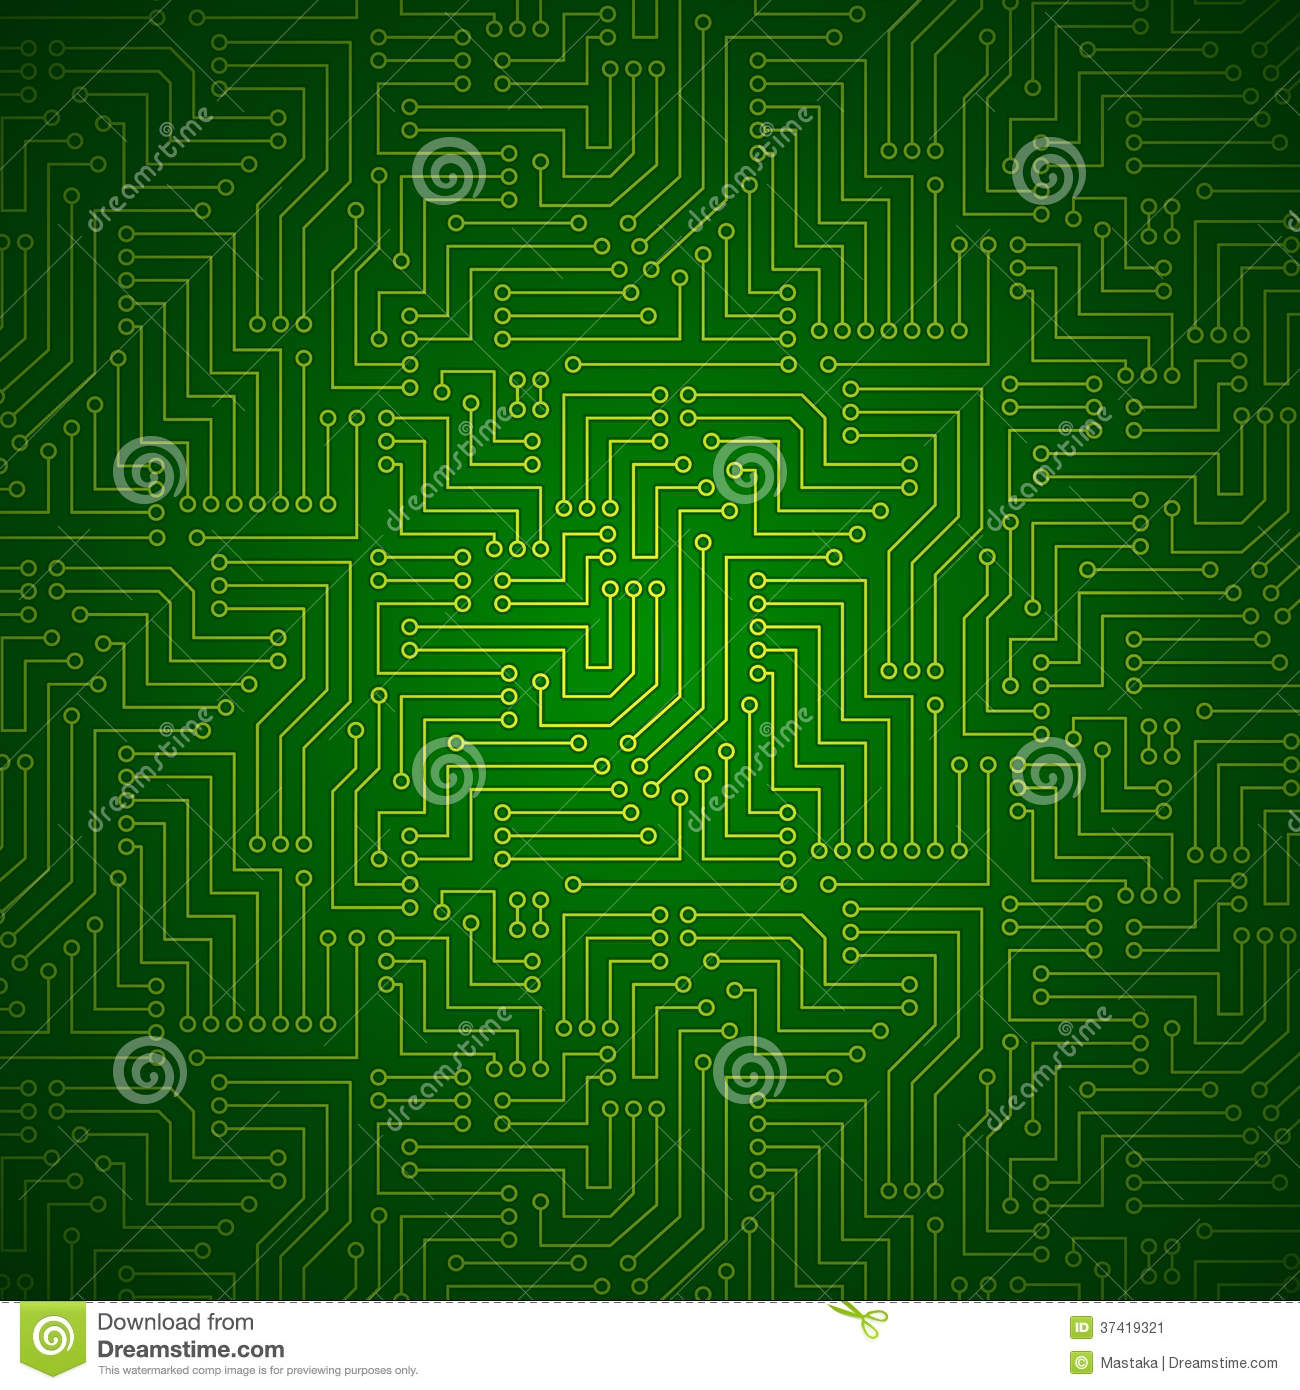 Images Of Yellow Printed Circuit Boards Spacehero Fiberglass Board Shining Royalty Free Stock Photo